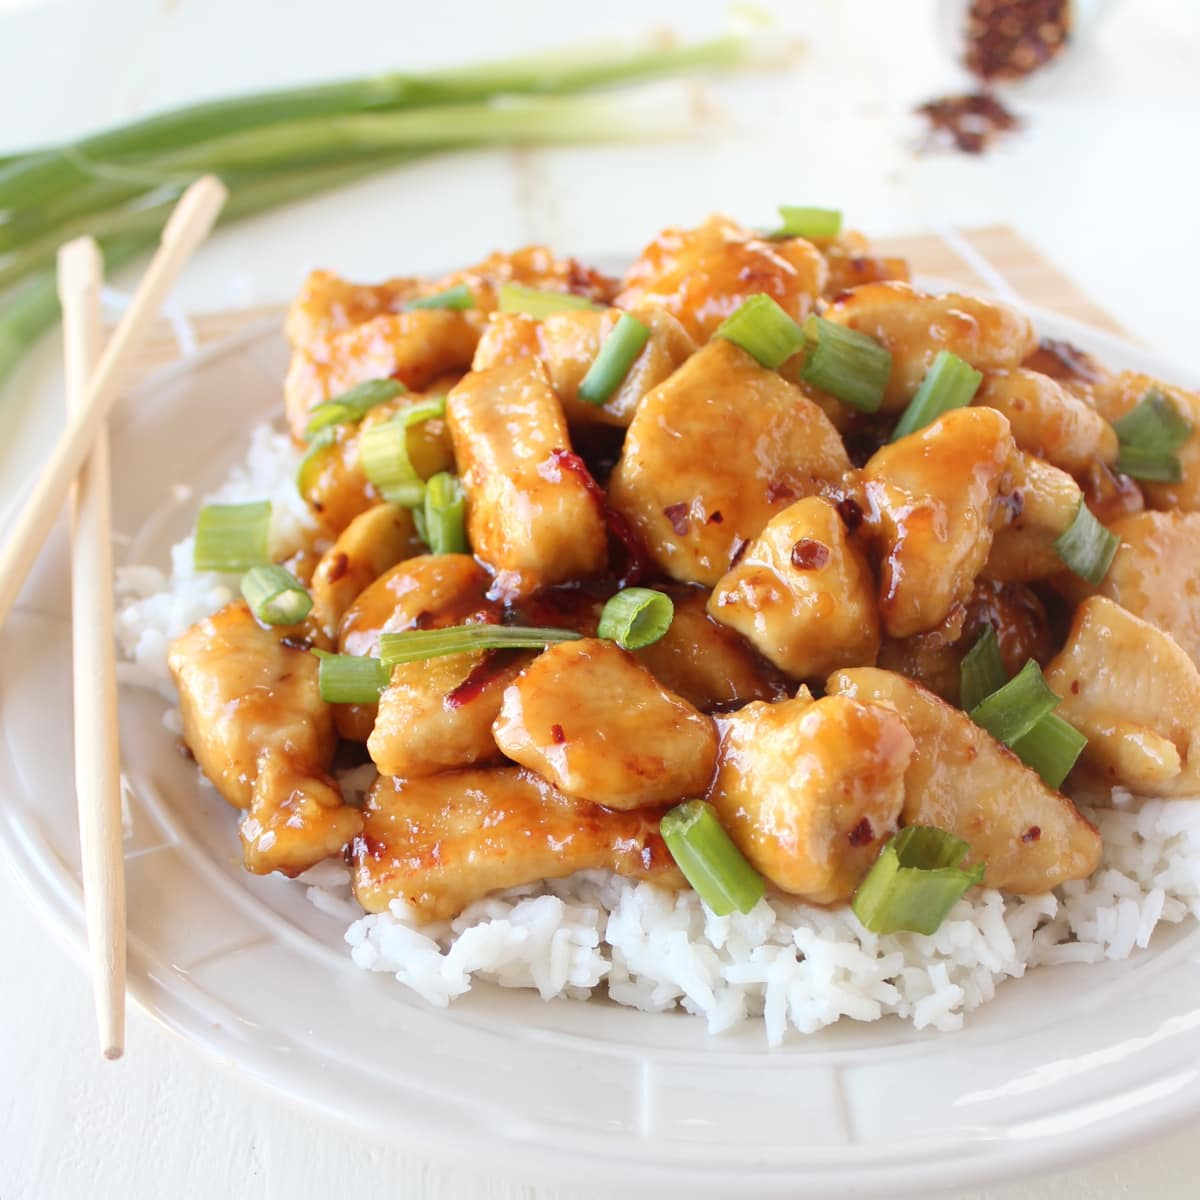 Gluten free chinese honey chicken recipe whitneybond forumfinder Choice Image